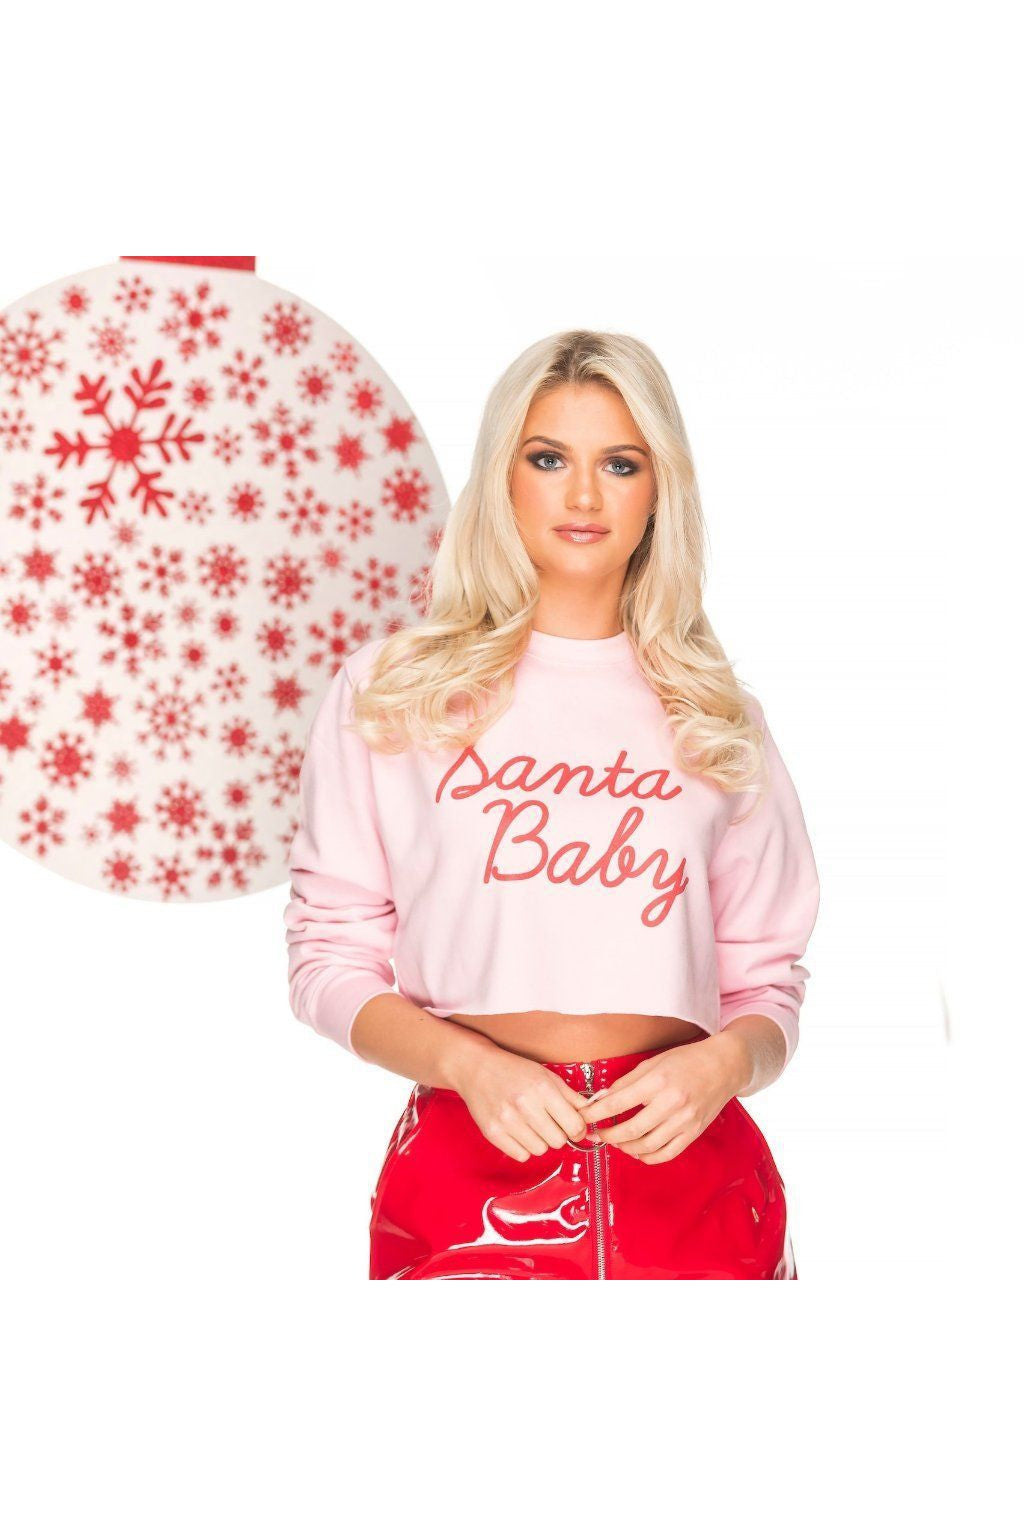 SANTA BABY Cropped Christmas Jumper